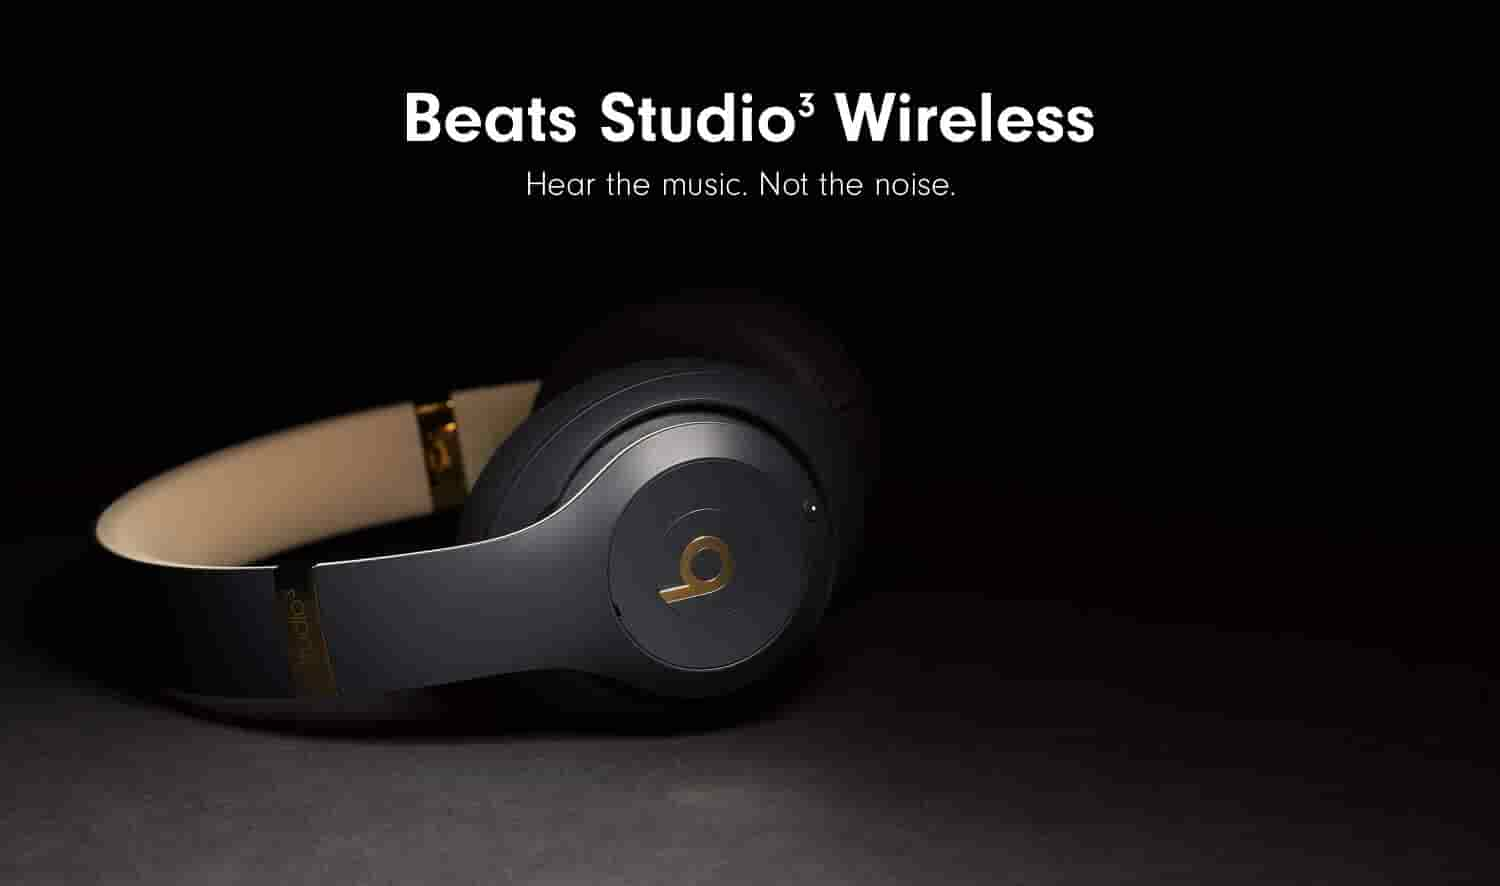 Beats Studio3 Wireless: Hear the music. Not the noise.